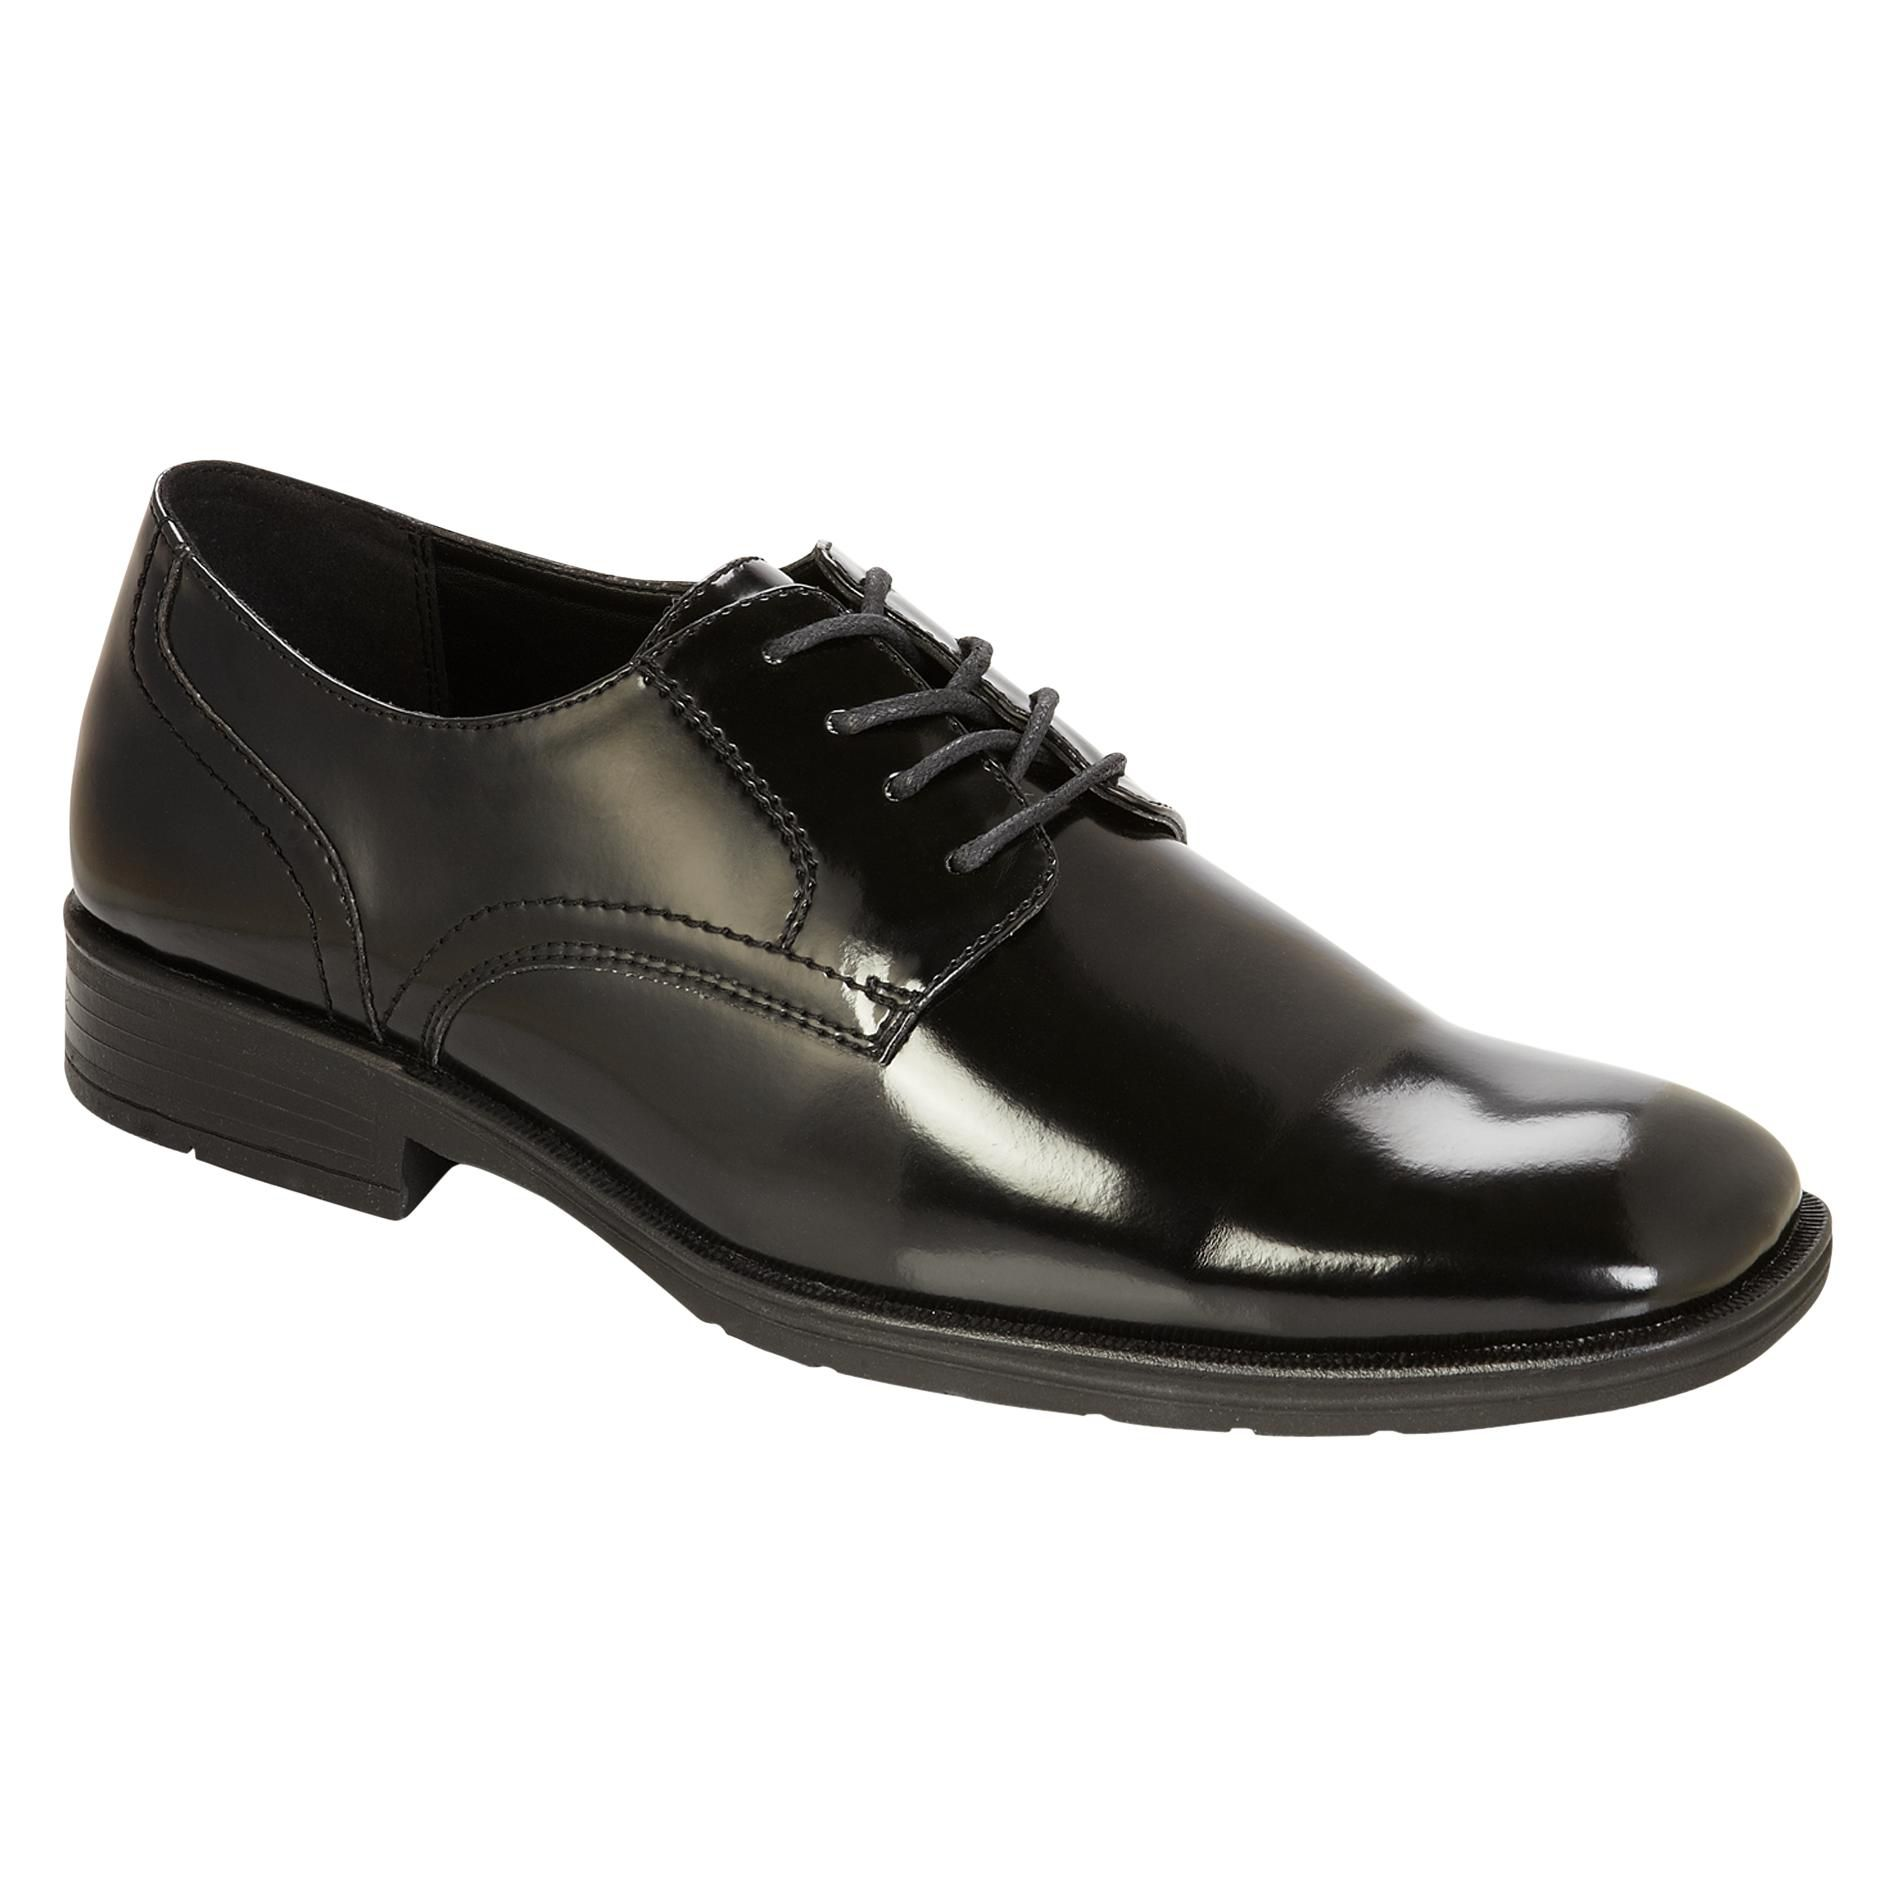 Thom McAn  Men's Kalen Dress Oxford - Black